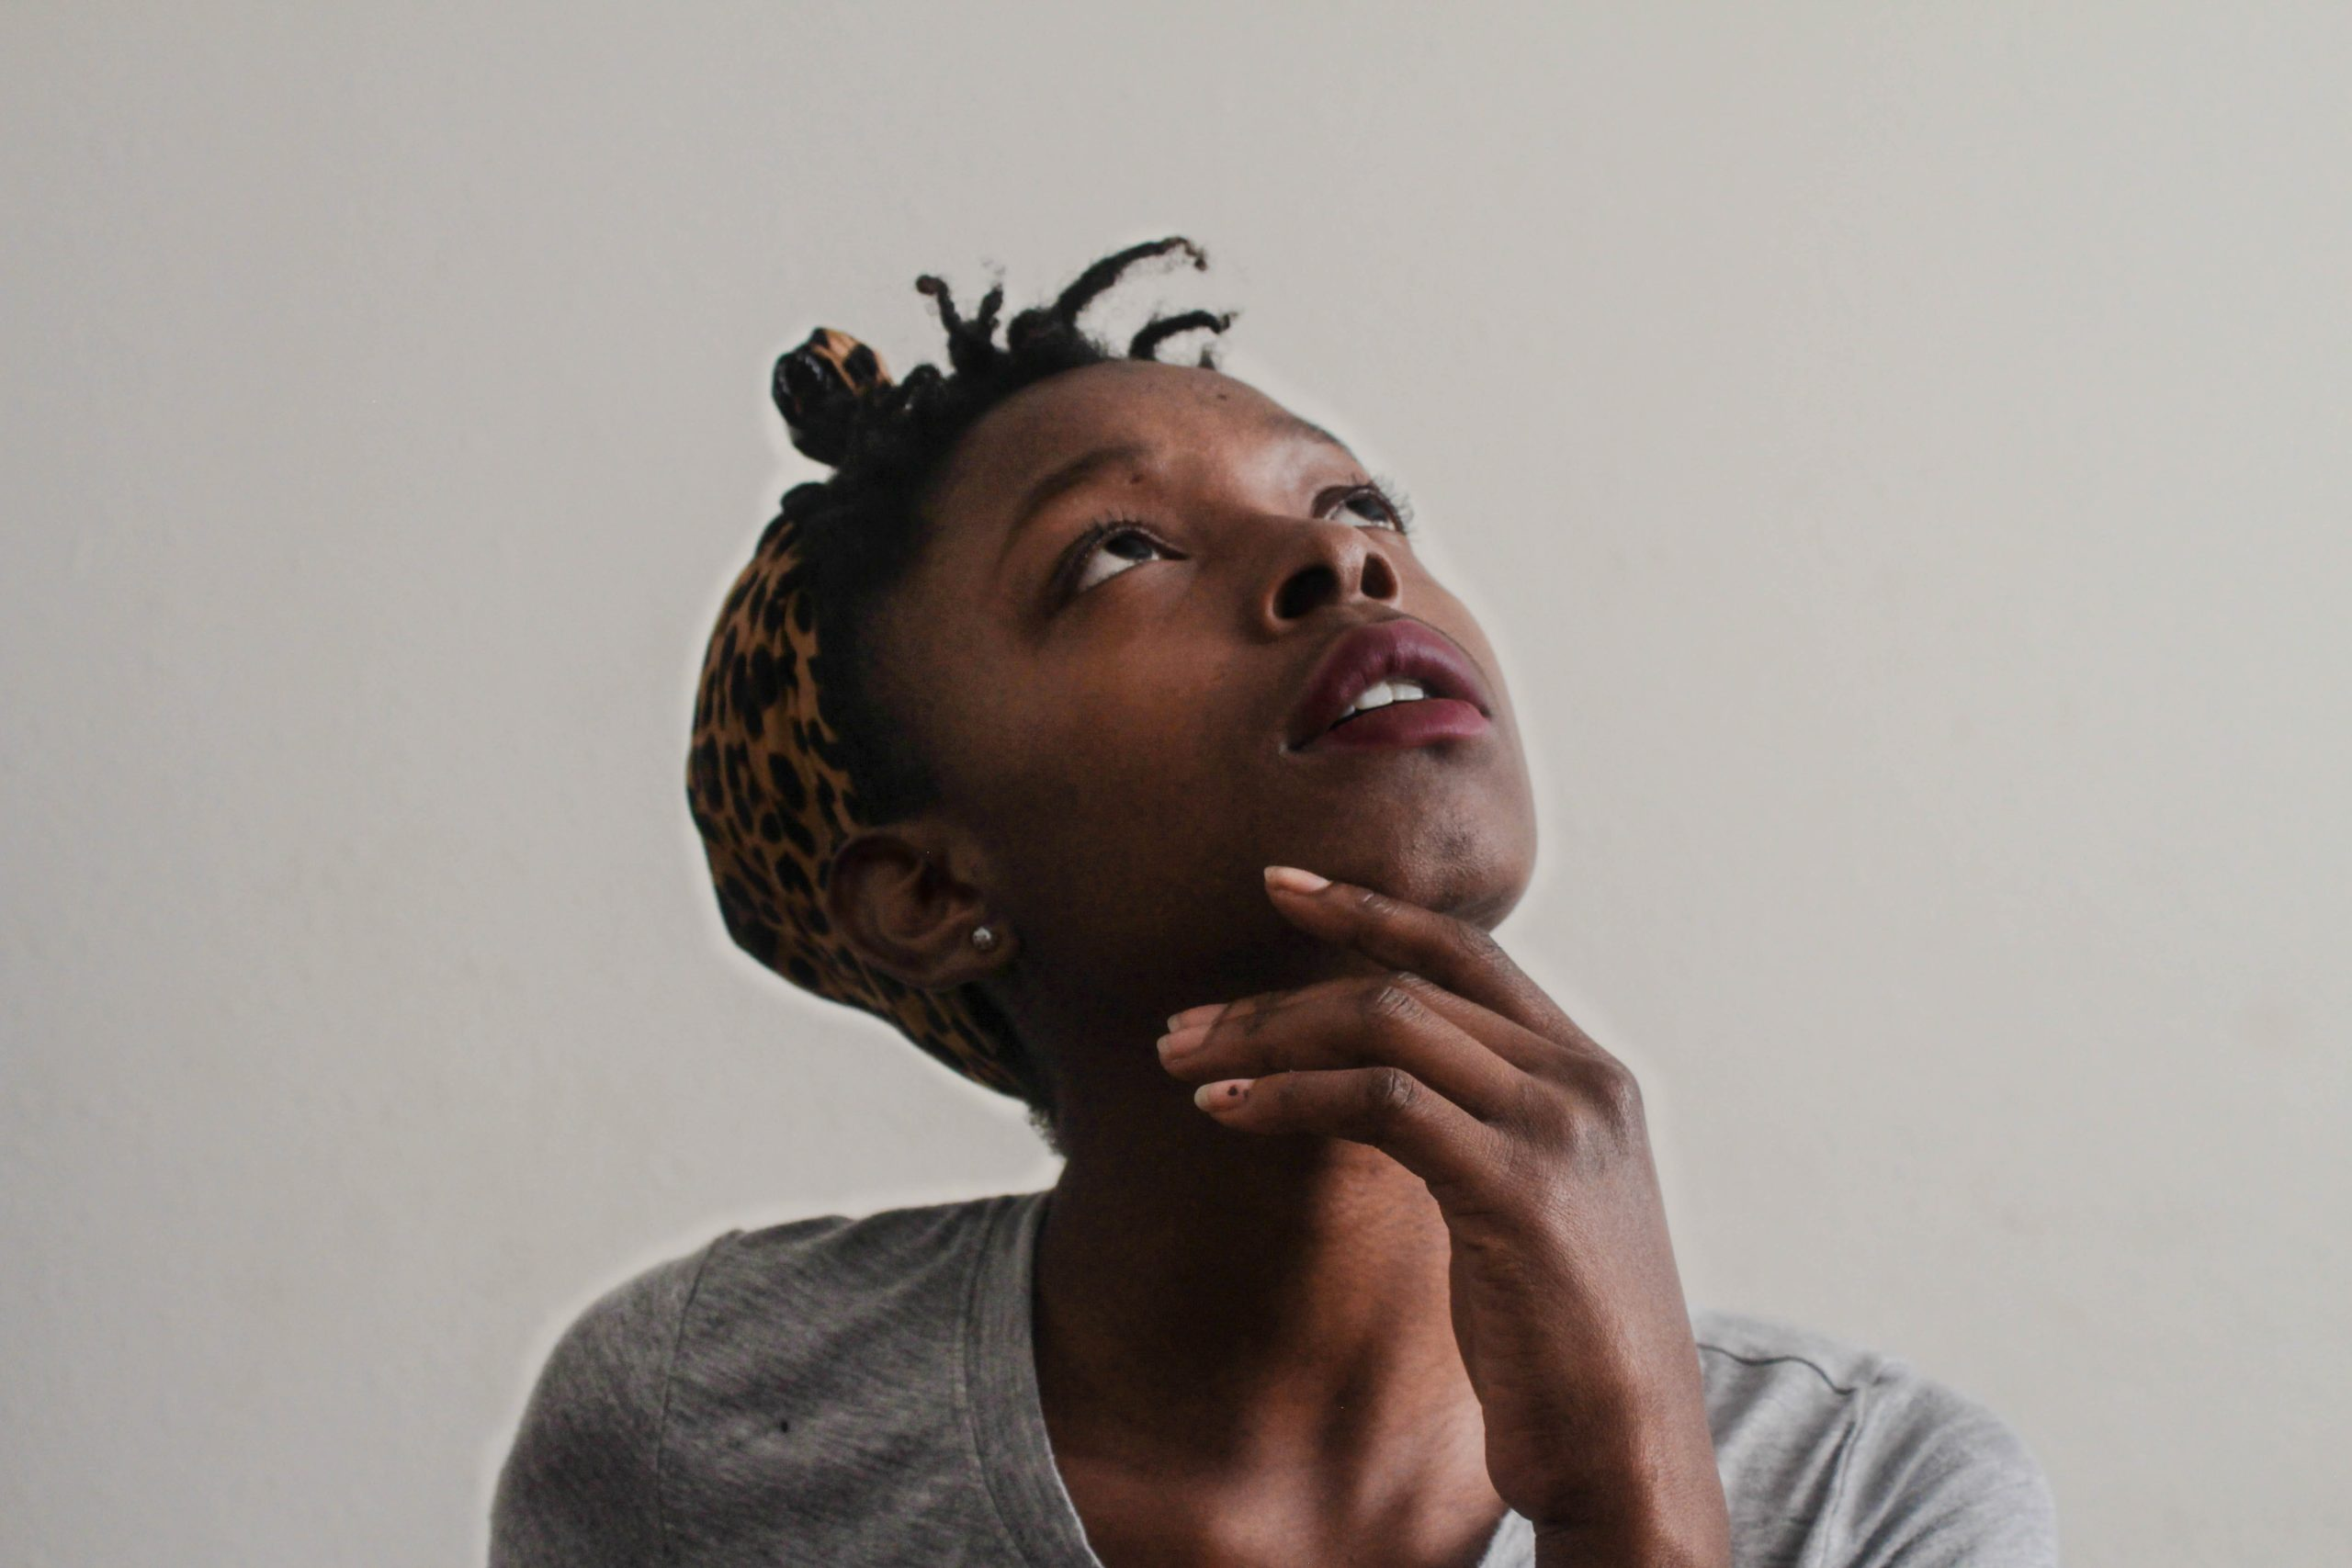 African American girl in a gray shirt looking upward in a thinking postion.